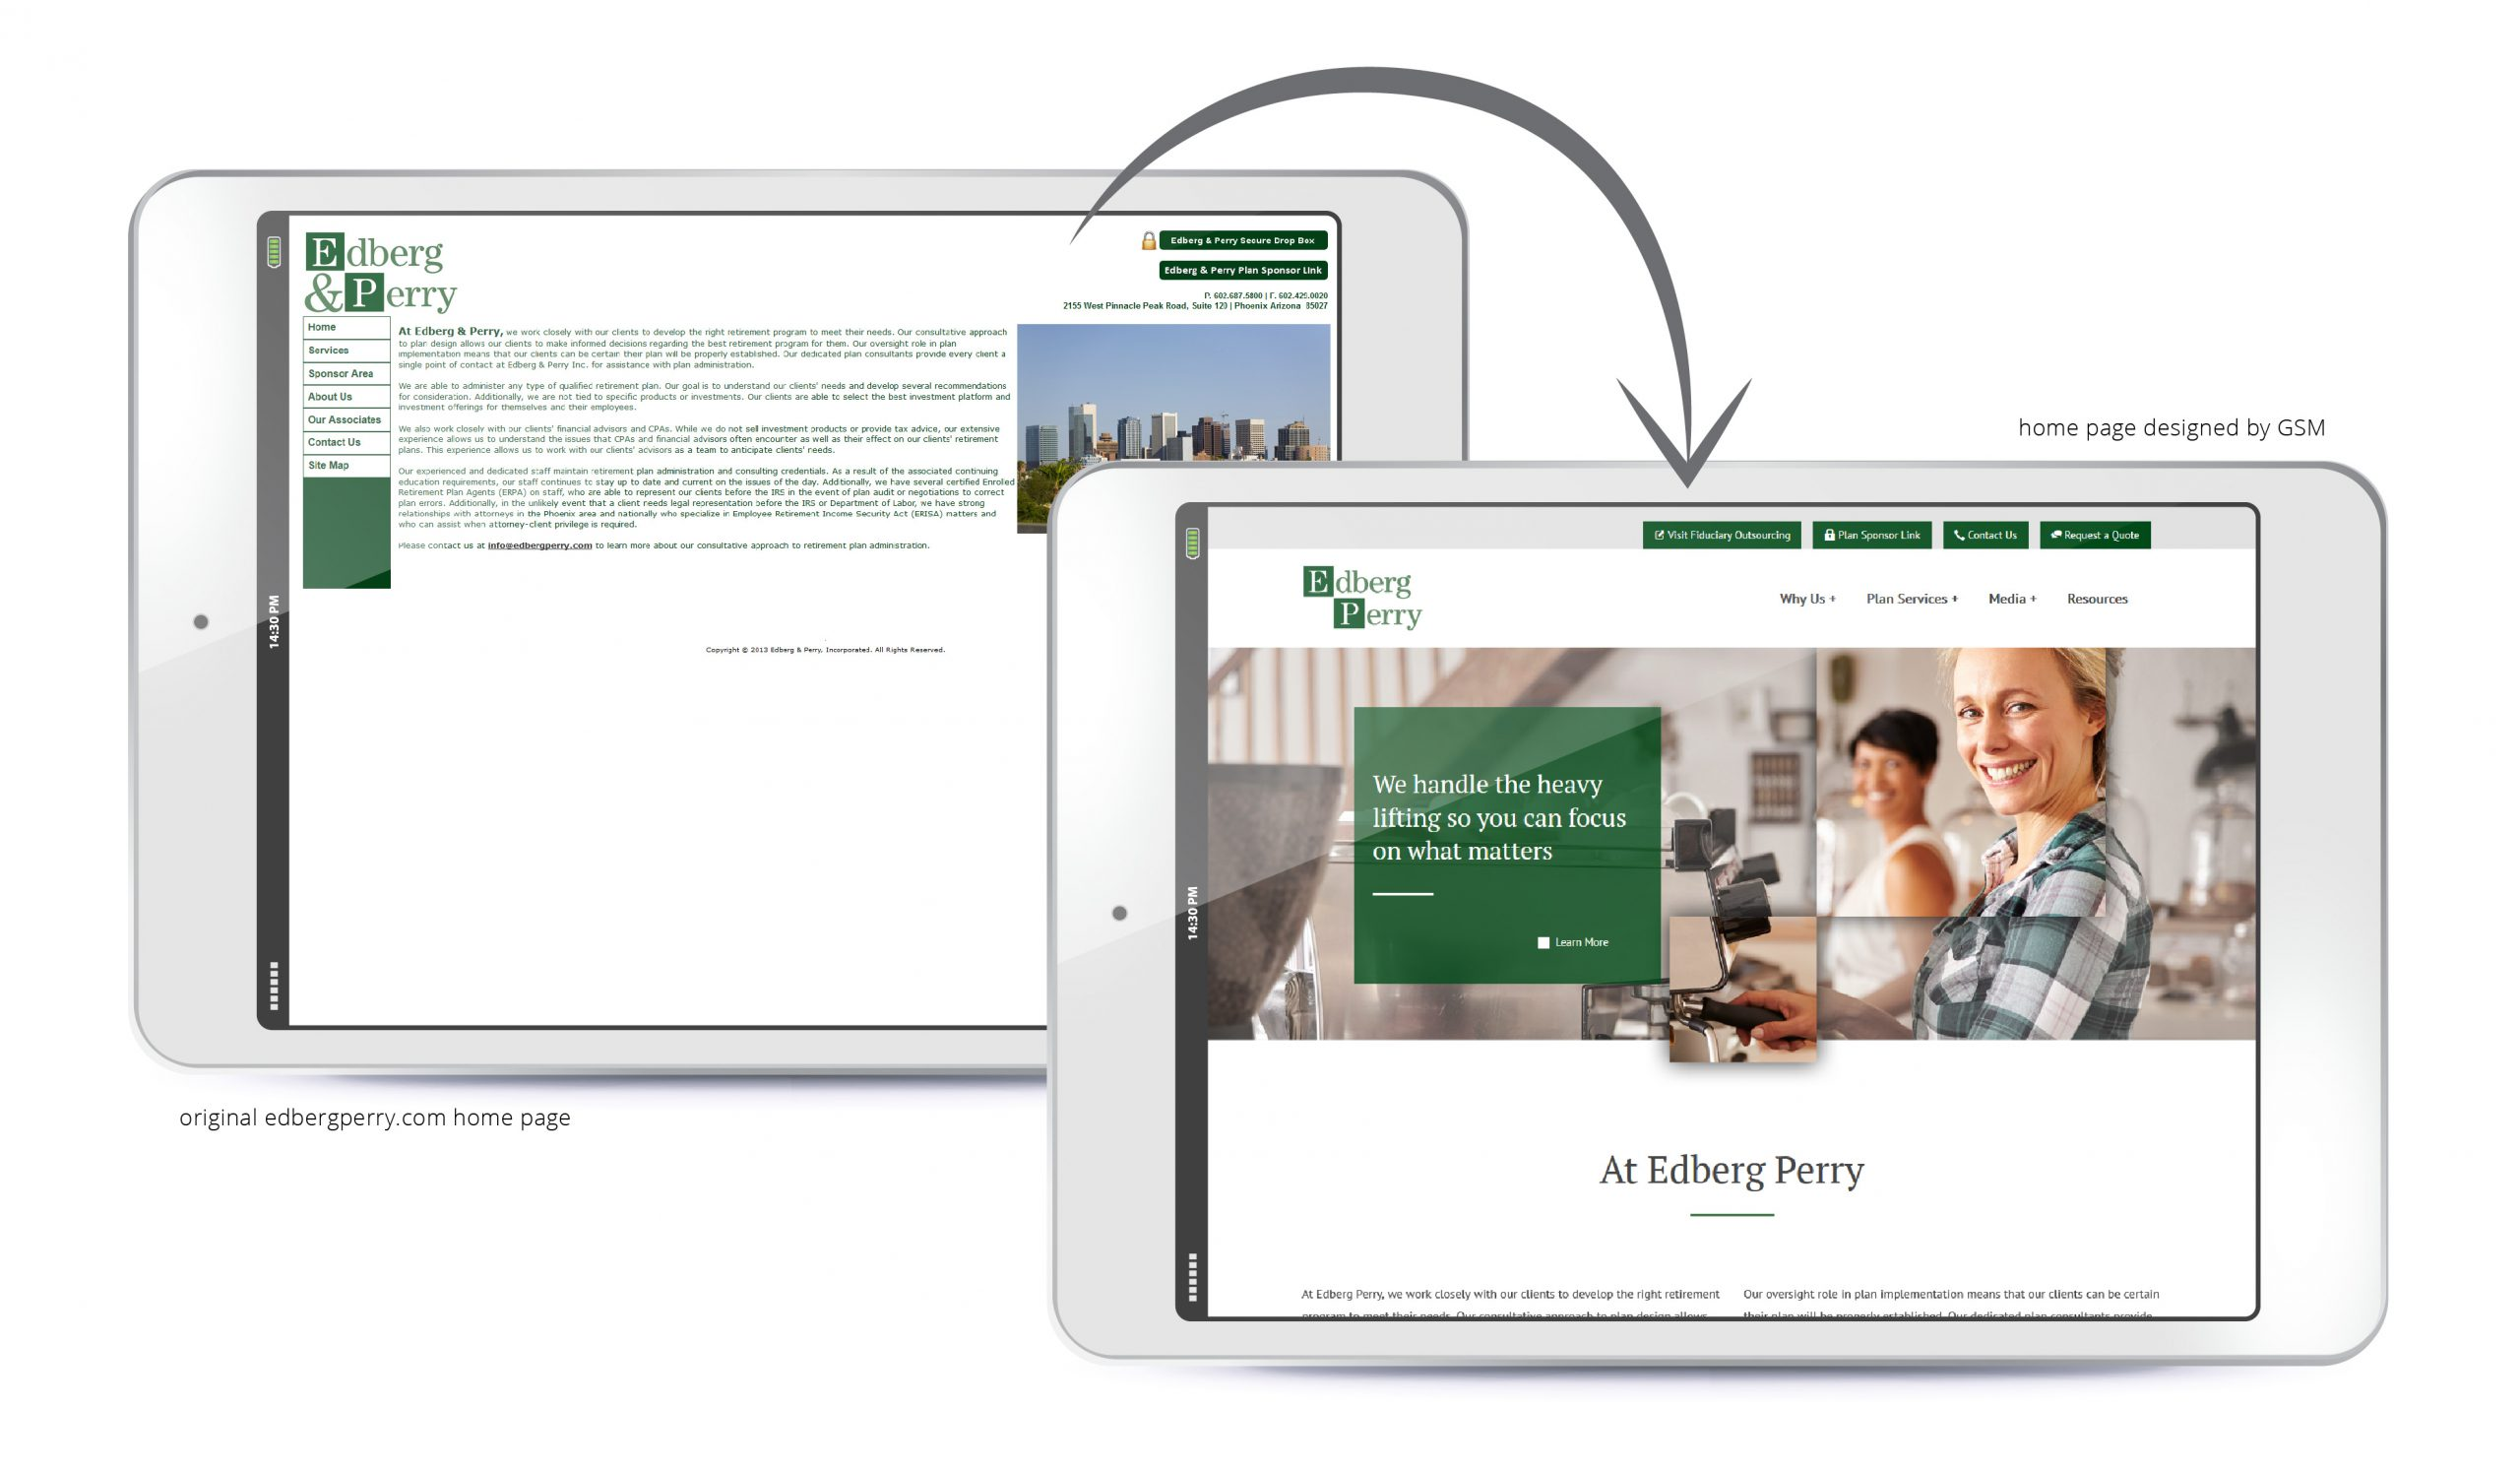 Before-and-after Edberg Perry website redesign